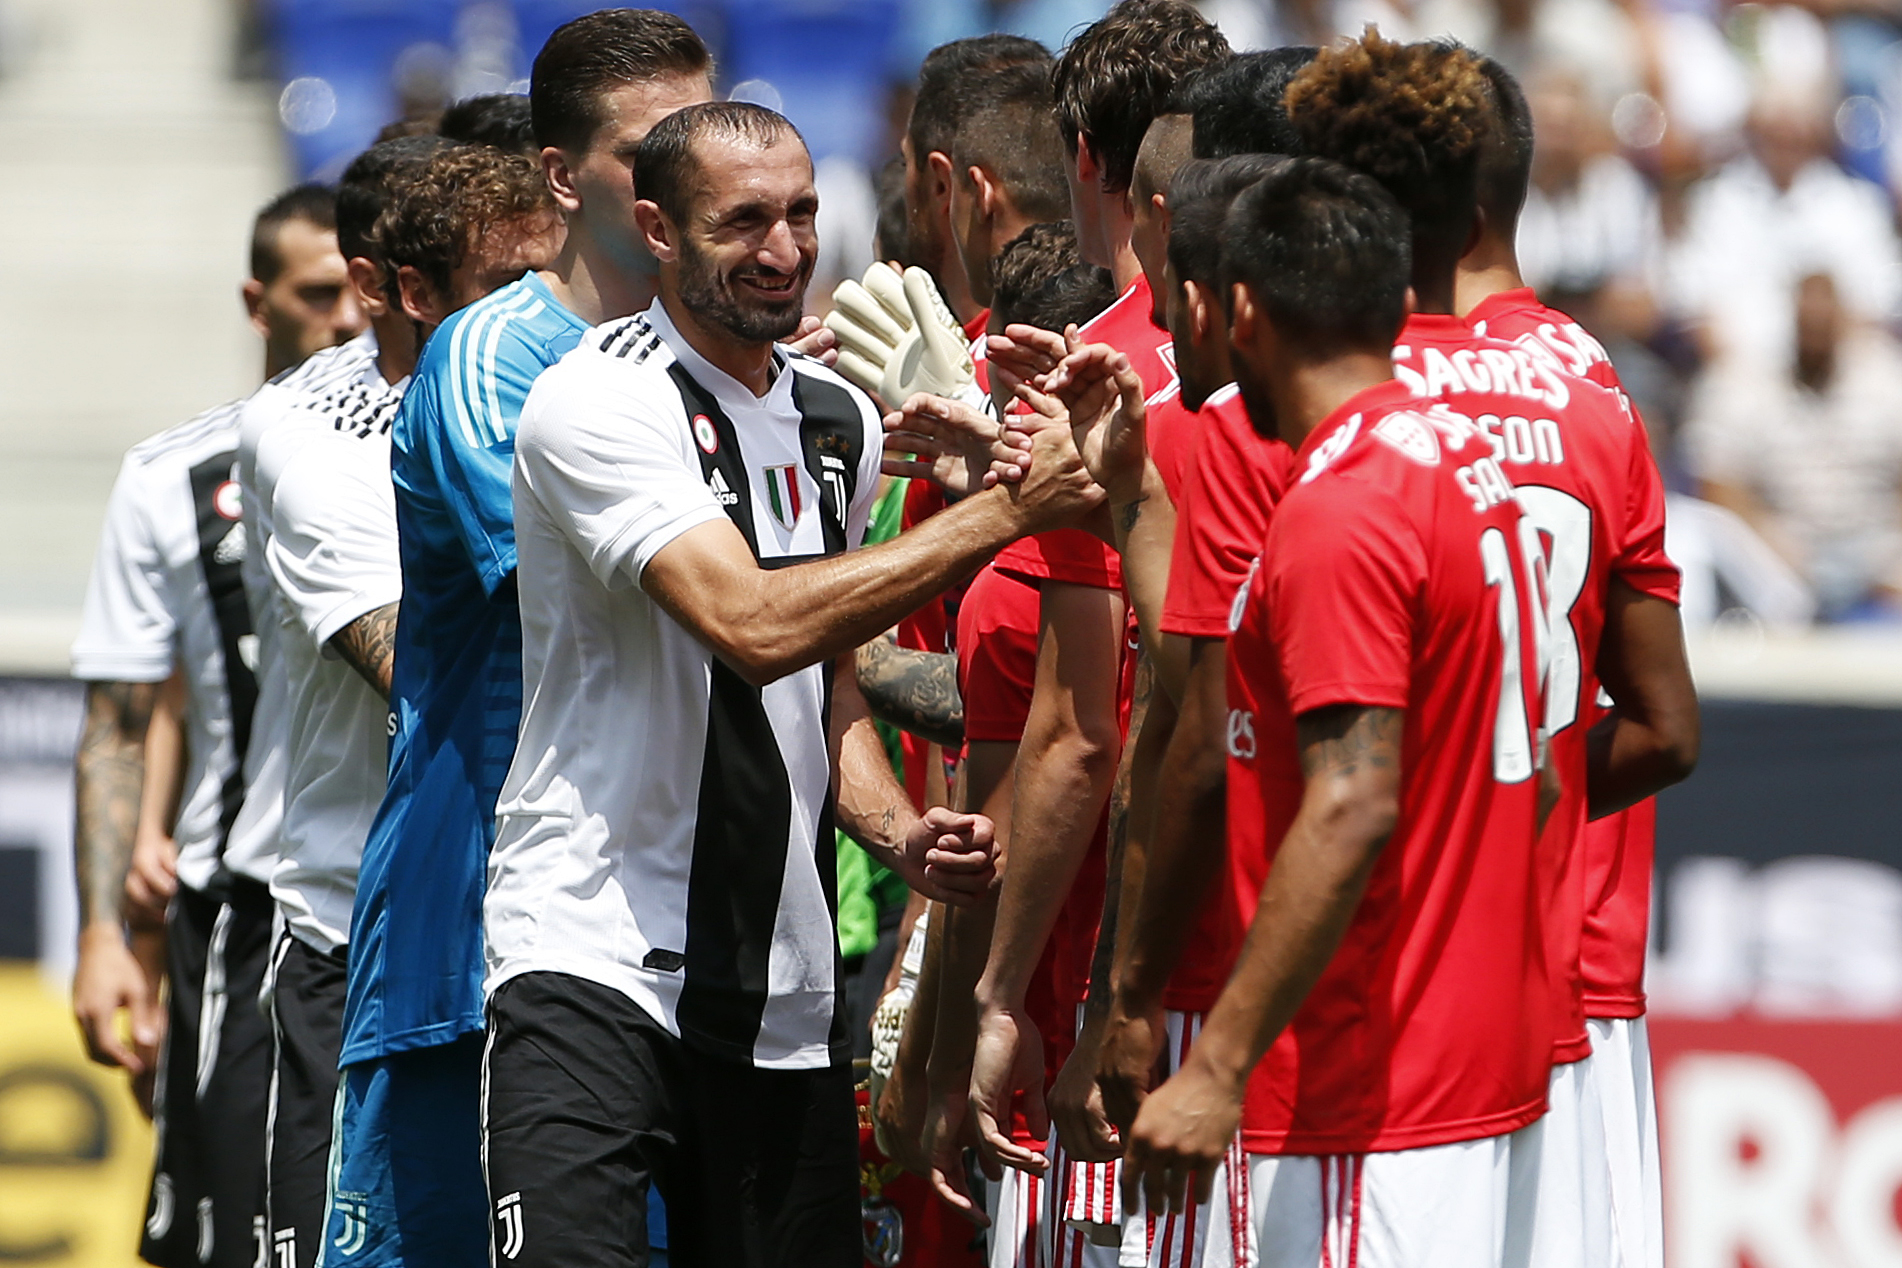 Juventus FC v Benfica FC - International Champions Cup 2018